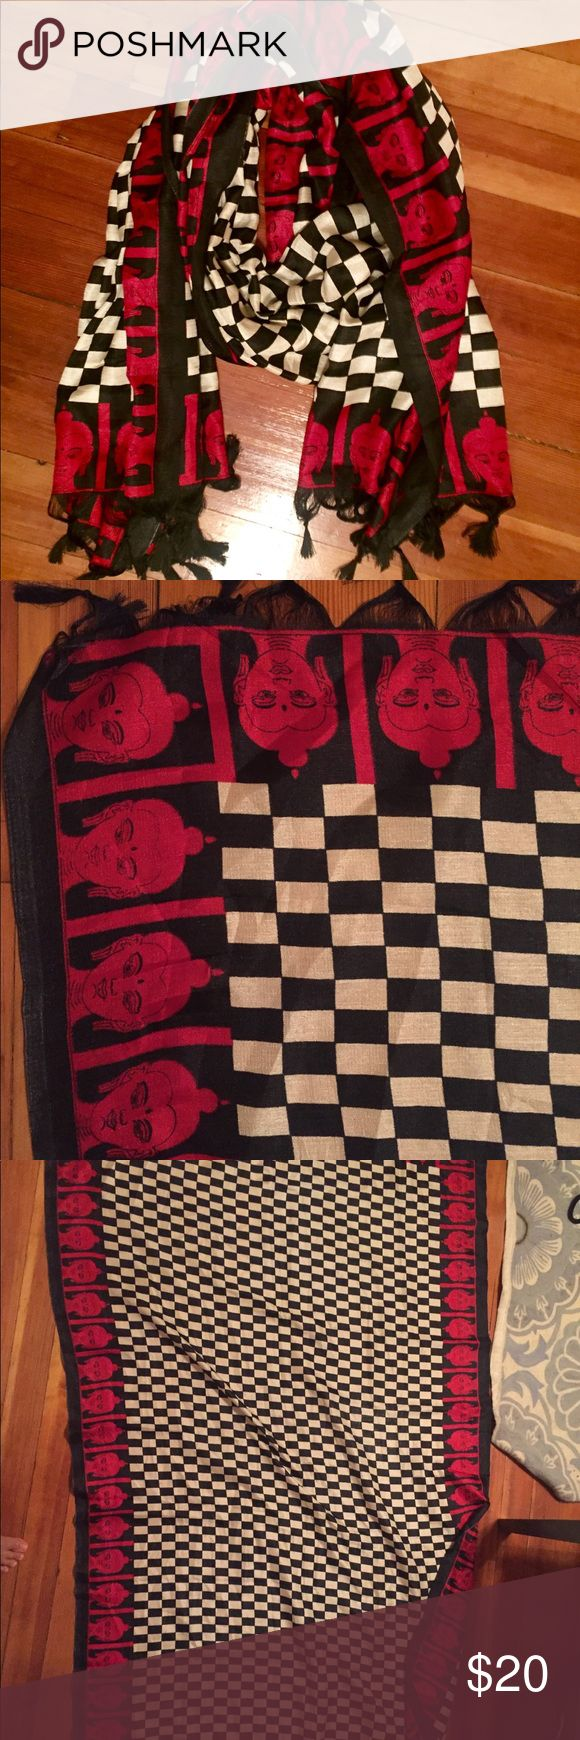 NWT Silk Scarf - Red, White, Black Buddha Print This silk scarf measures 4 ft by 7 ft when laid out. Red buddhas outline the scarf, the center is a black and white checkered print. Tassels line both ends. Never worn!! Accessories Scarves & Wraps